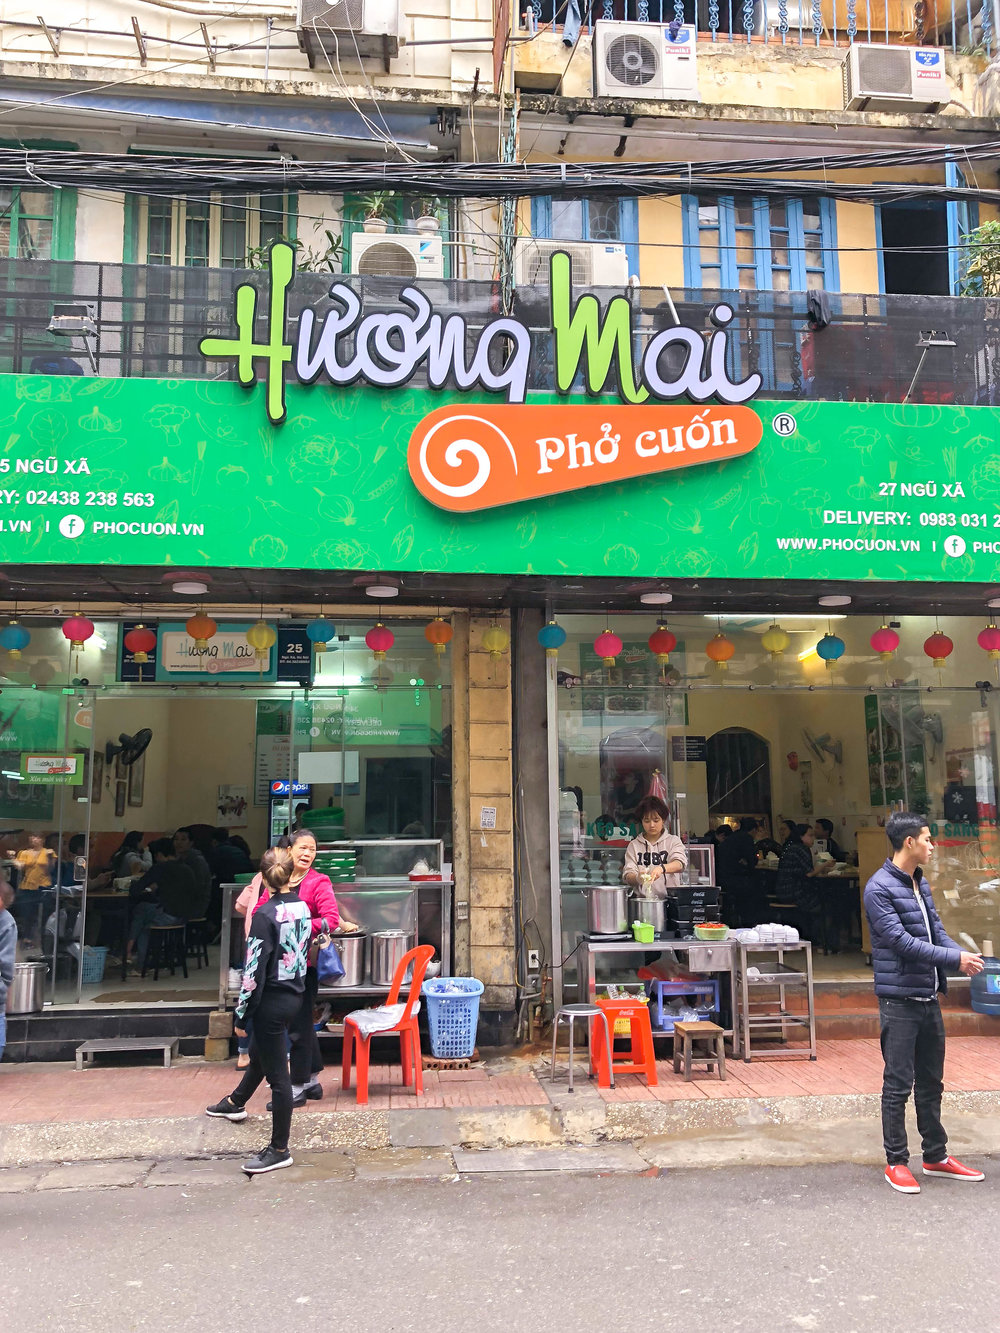 Hanoi Food Guide | 8 Foods You Must Try in Hanoi, Vietnam